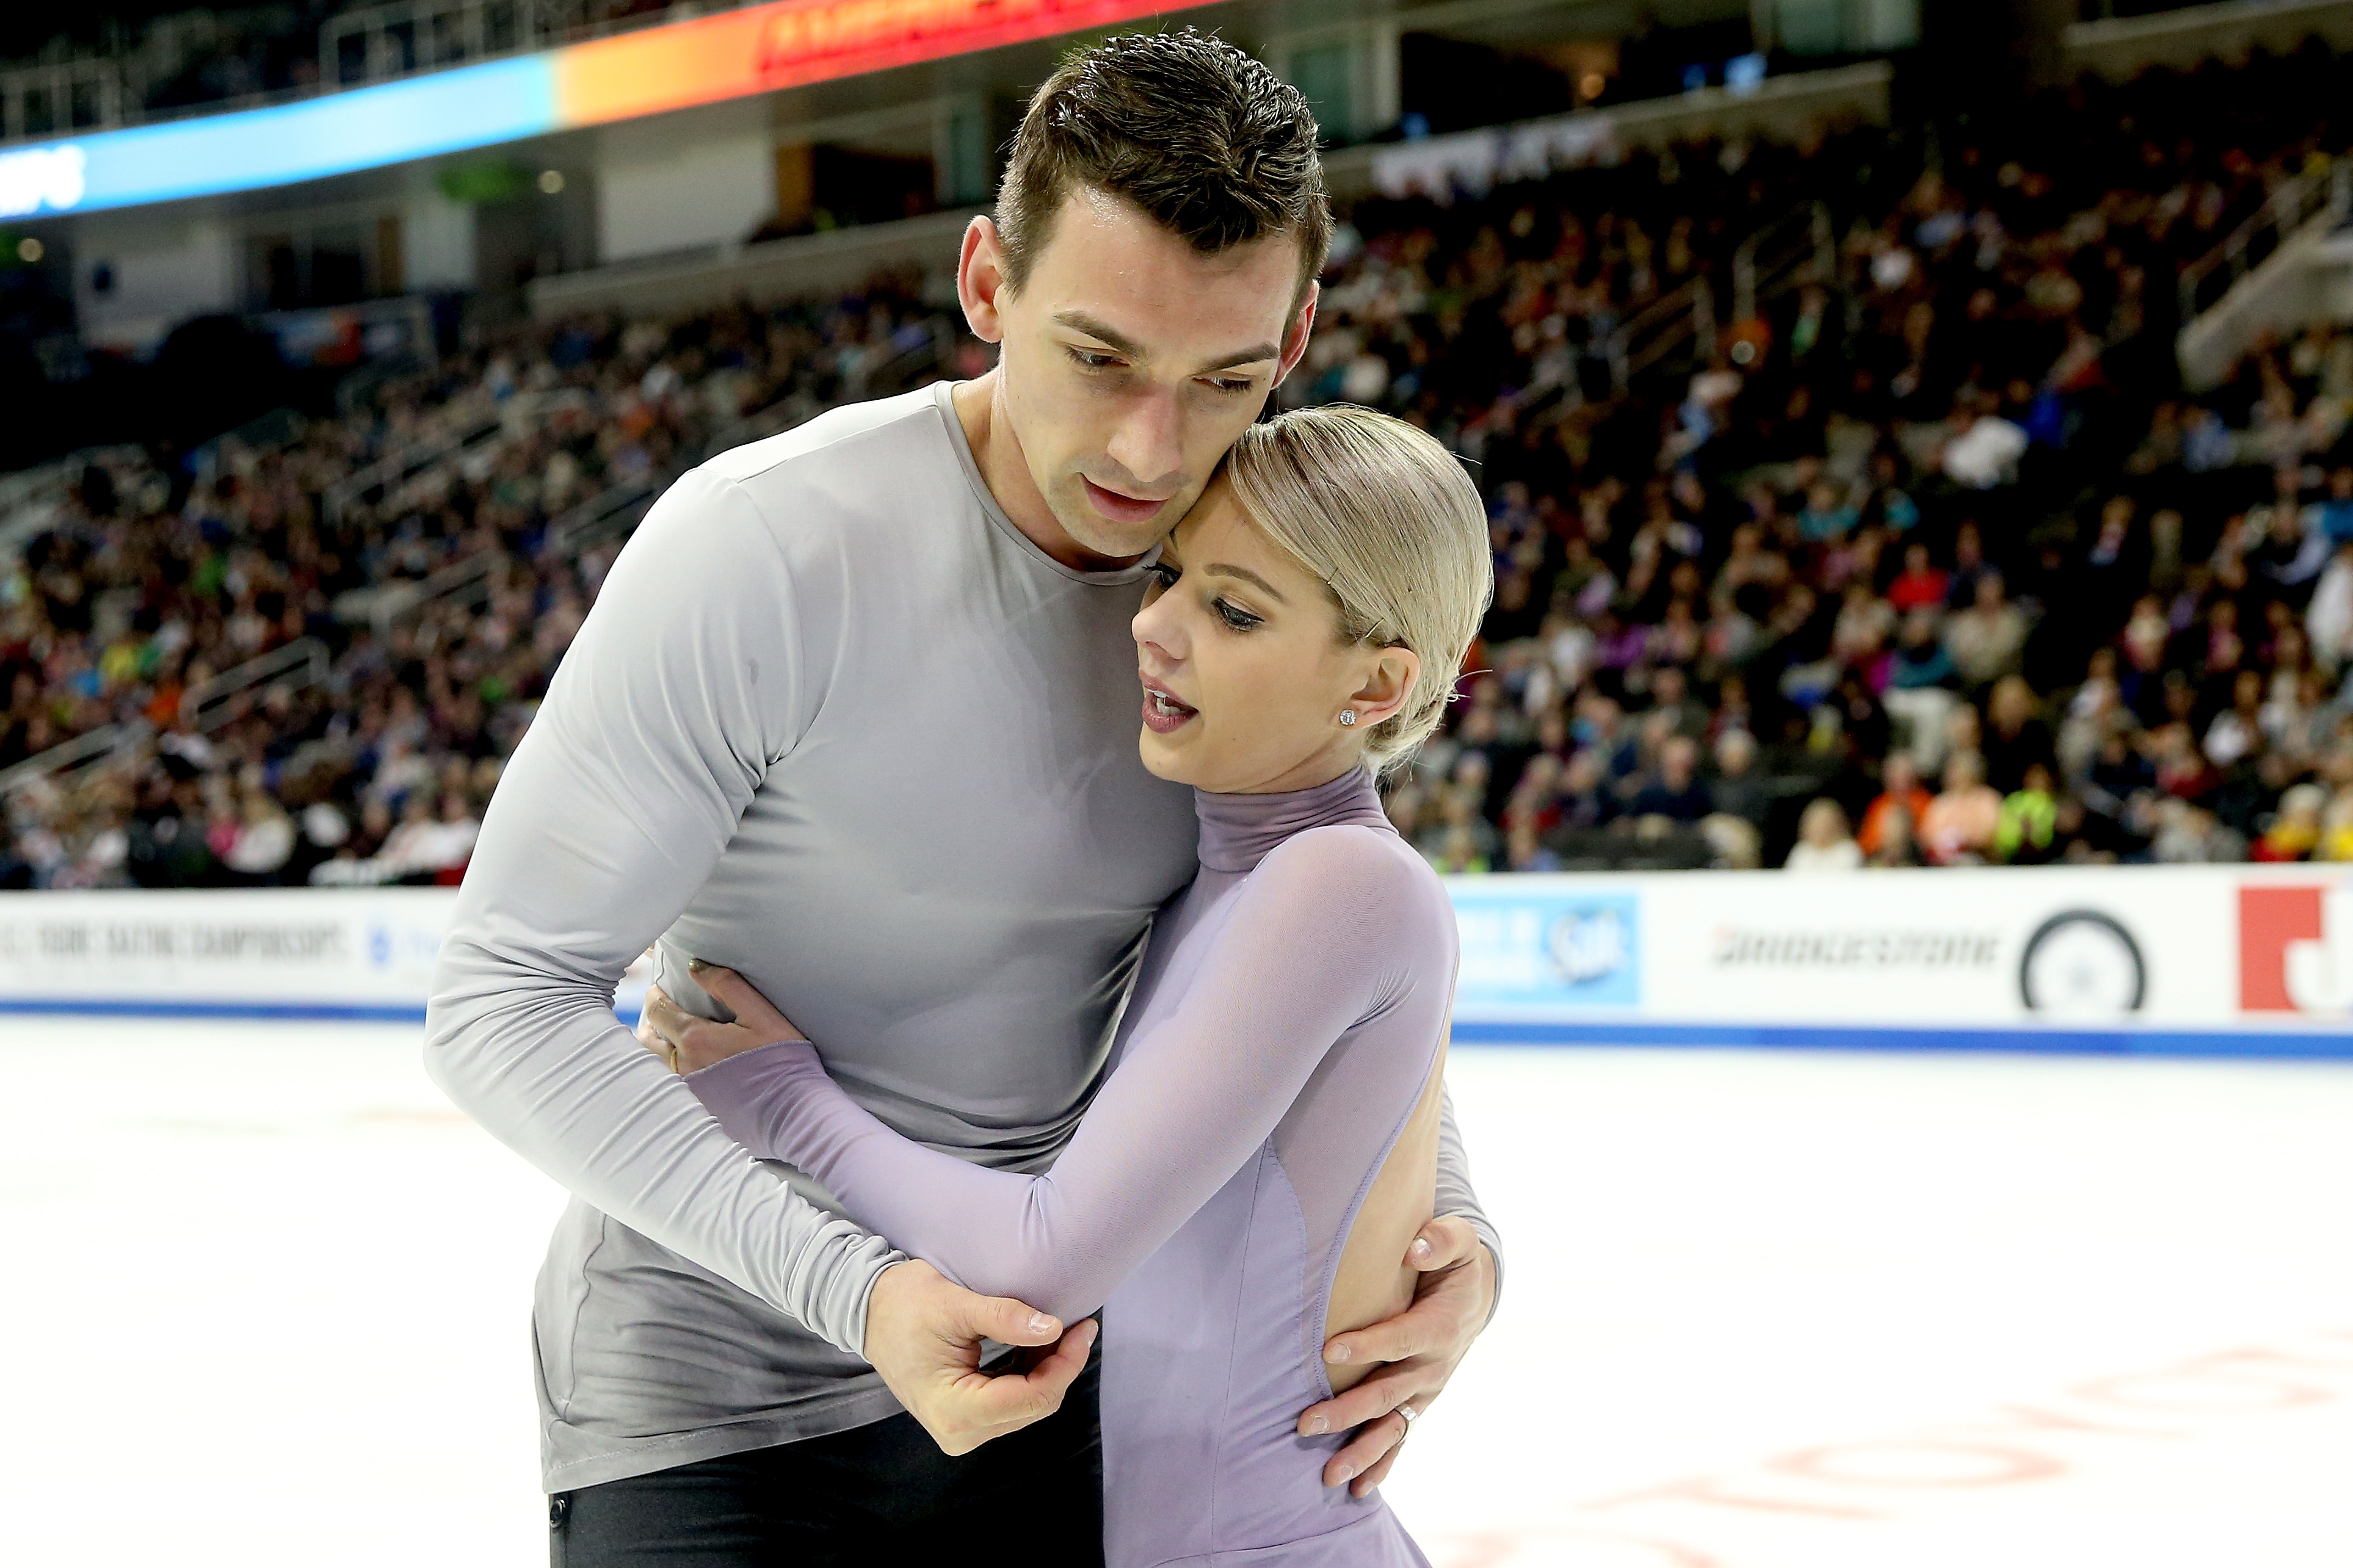 U.S. figure skater Alexa Knierim held back tears while talking about the Florida school shooting